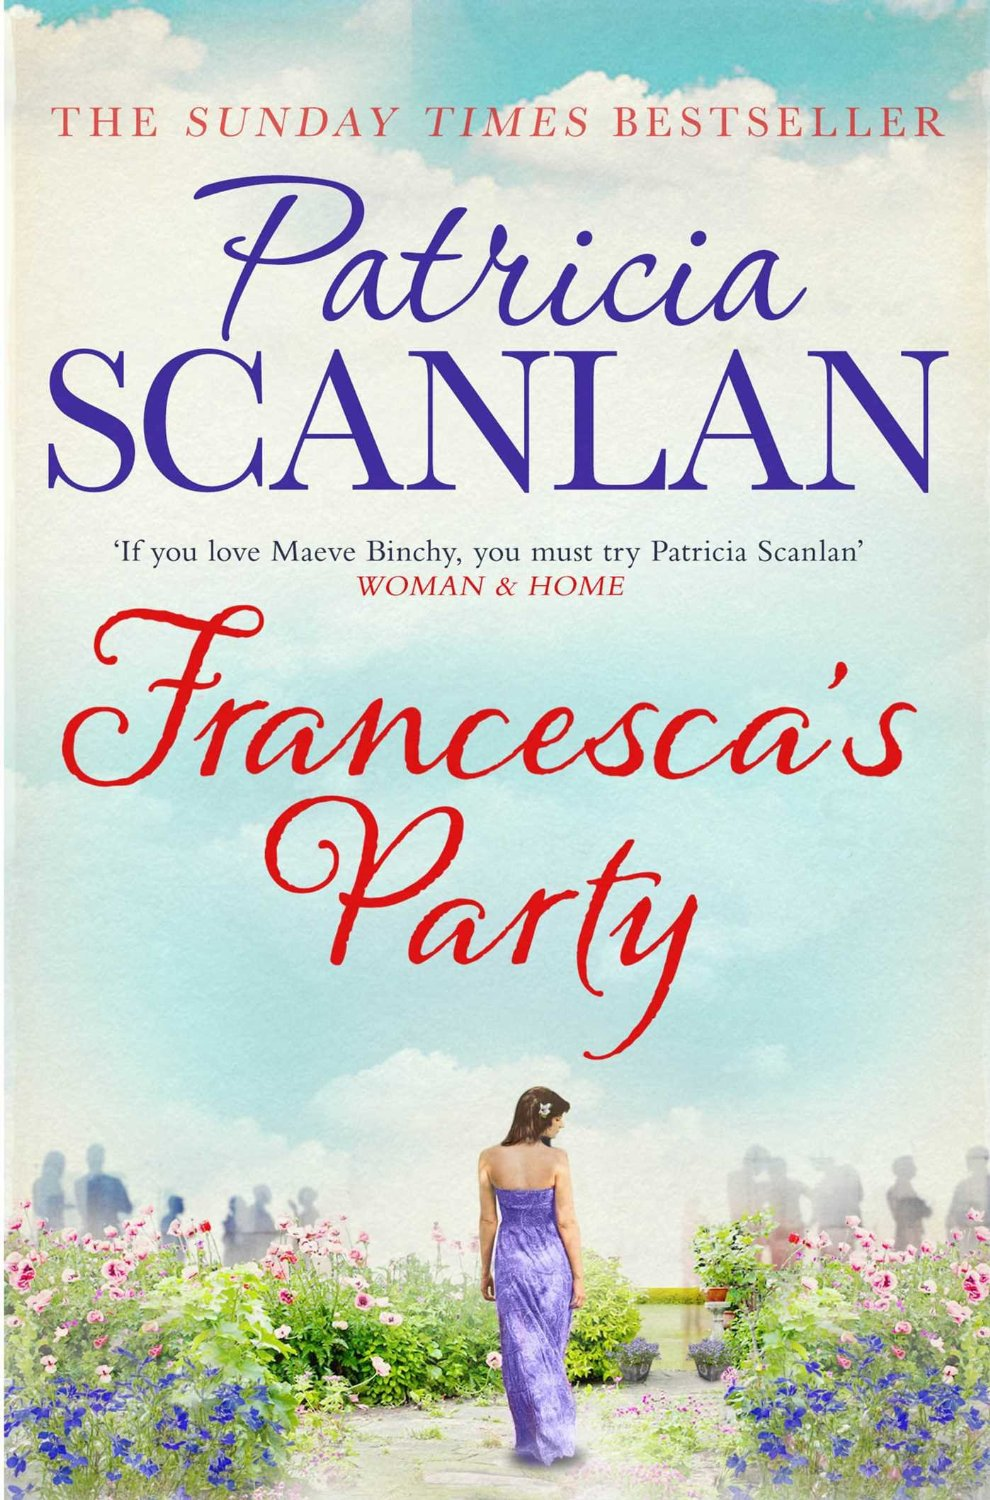 Francesca's Party - Patricia Scanlan.jpg